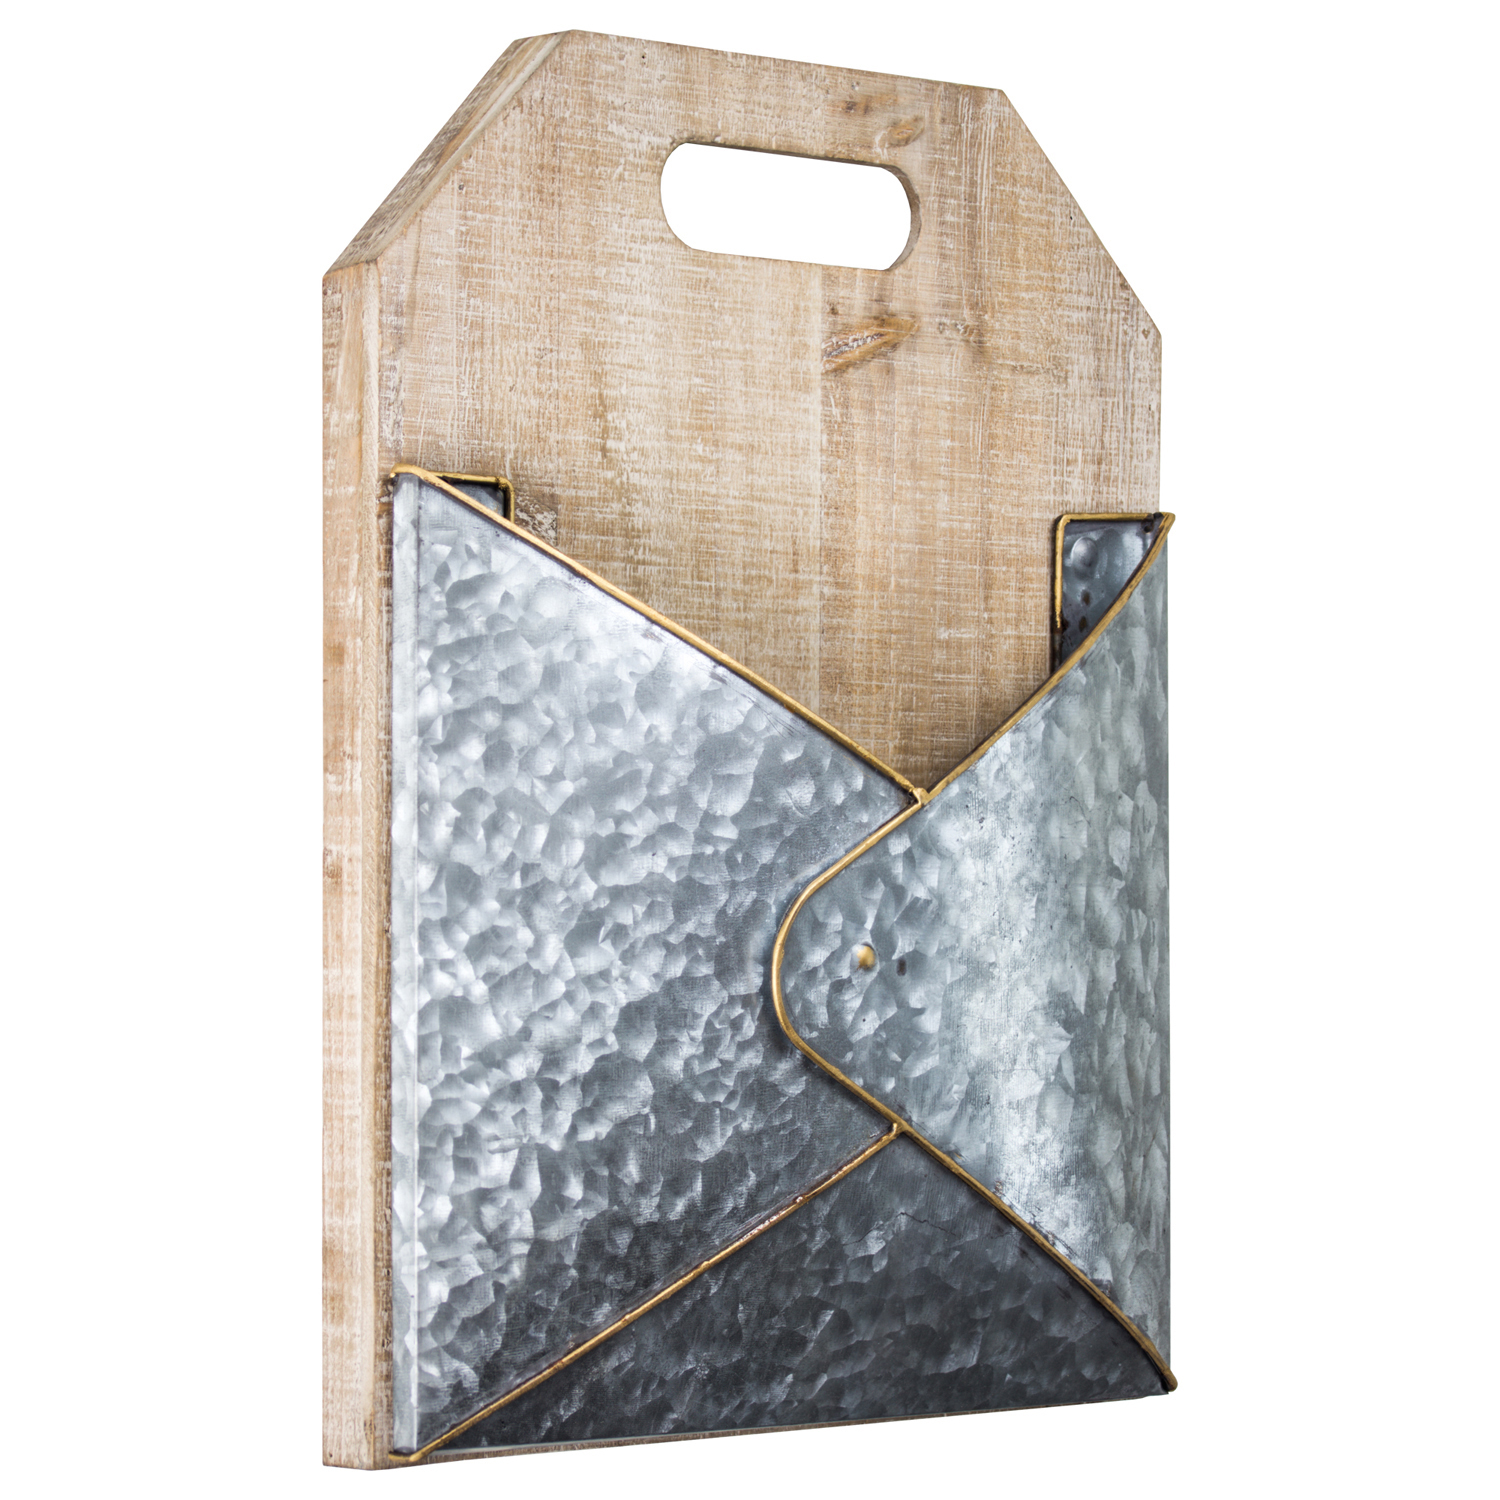 American Art Decor Hanging Mail Organizer